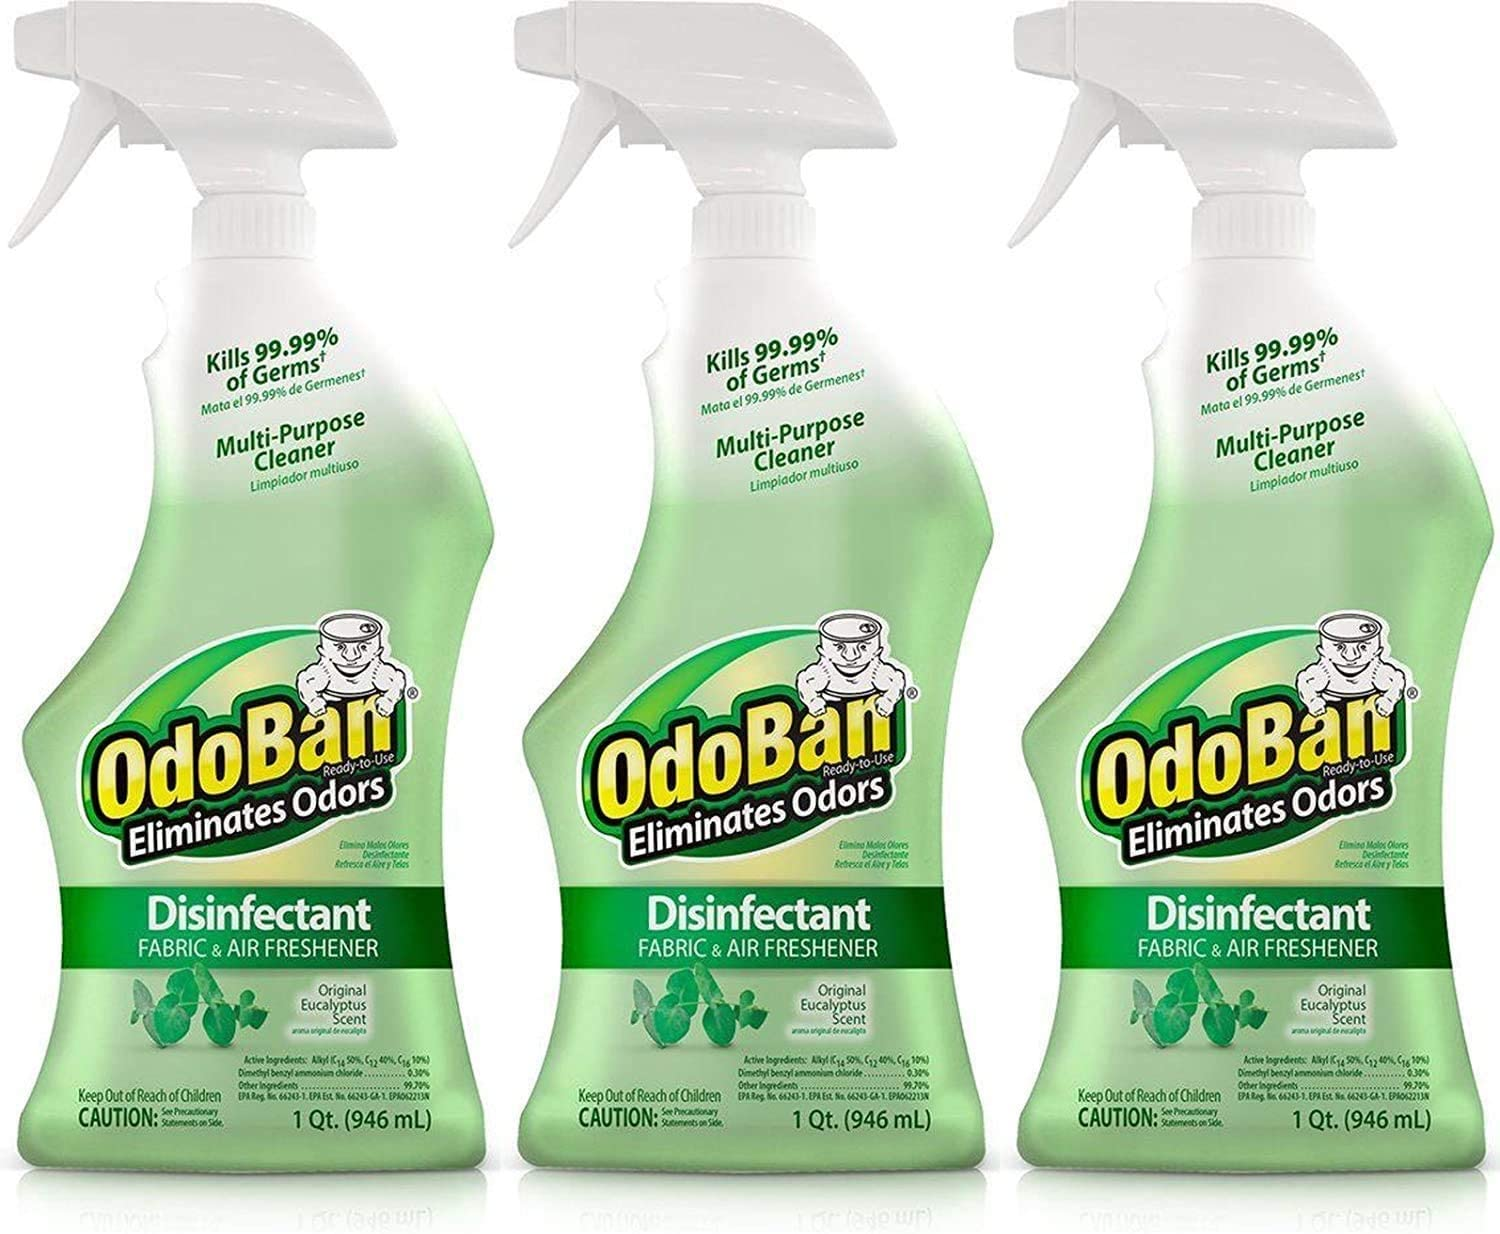 32 Oz Ready-to-Use Disinfectant Fabric Freshener 1 Challenge the lowest price of Japan Air eucal New Shipping Free